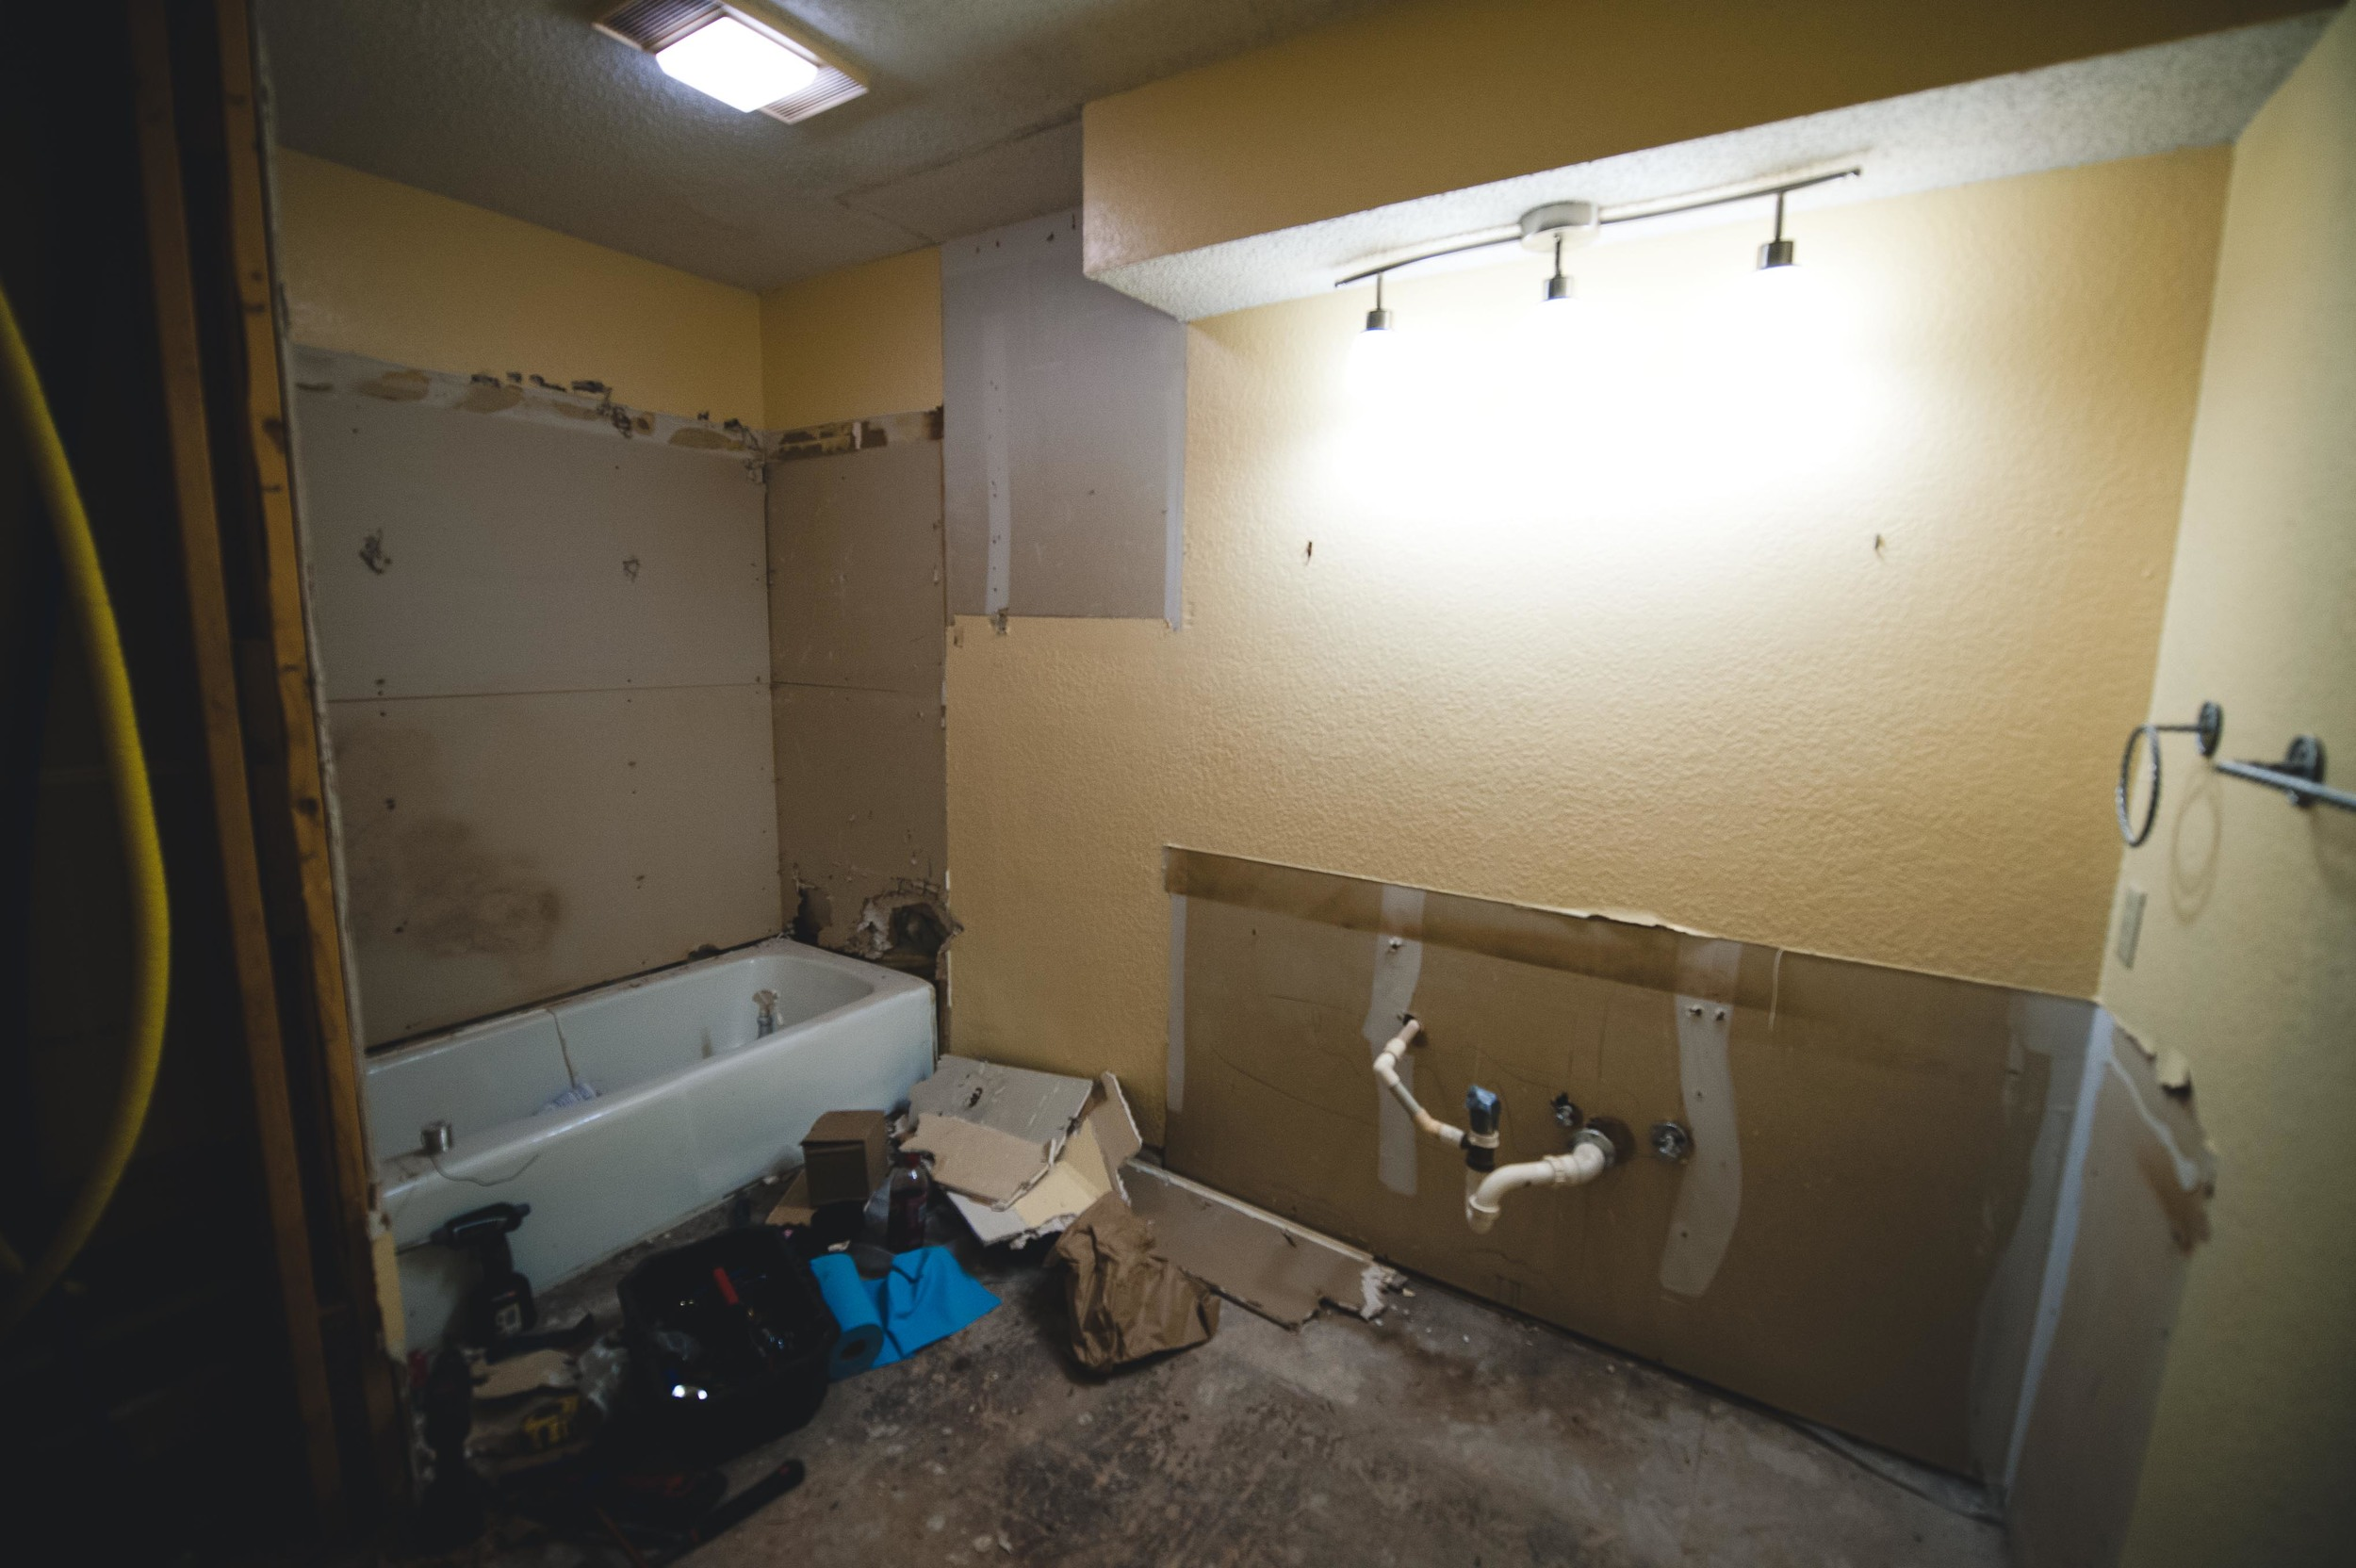 Not too exciting yet, but all of the bathrooms are being gutted.